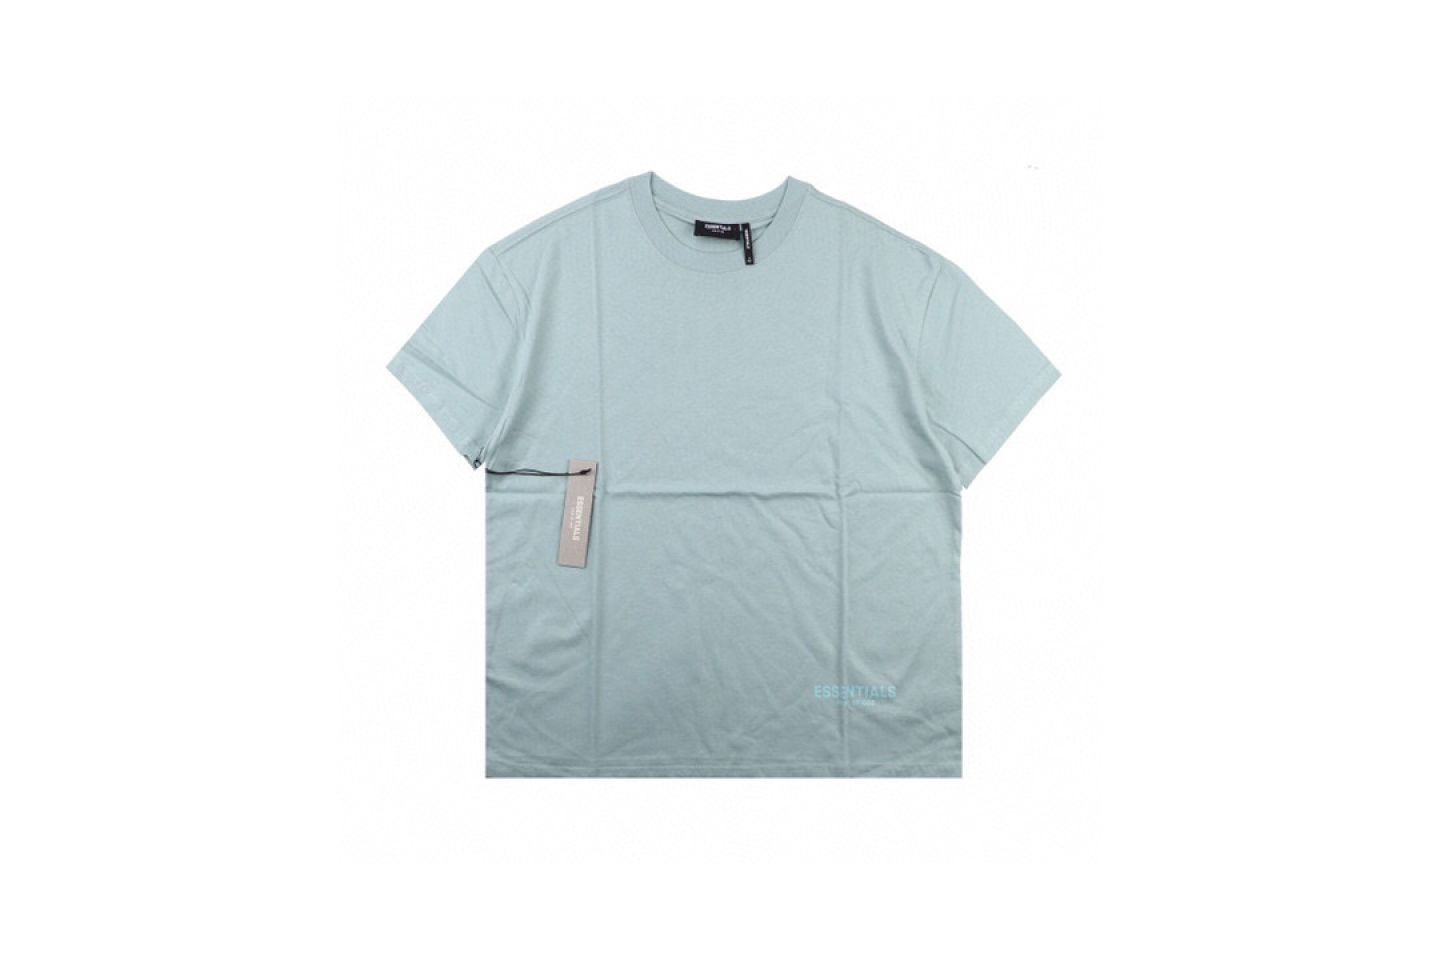 Shirt FEAR OF GOD ESSENTIALS 6 multi-line 3M reflective short-sleeved T-shirt mint 1 fear_of_god_essentials_6_multi_line_3m_reflective_short_sleeved_t_shirt_mint__1